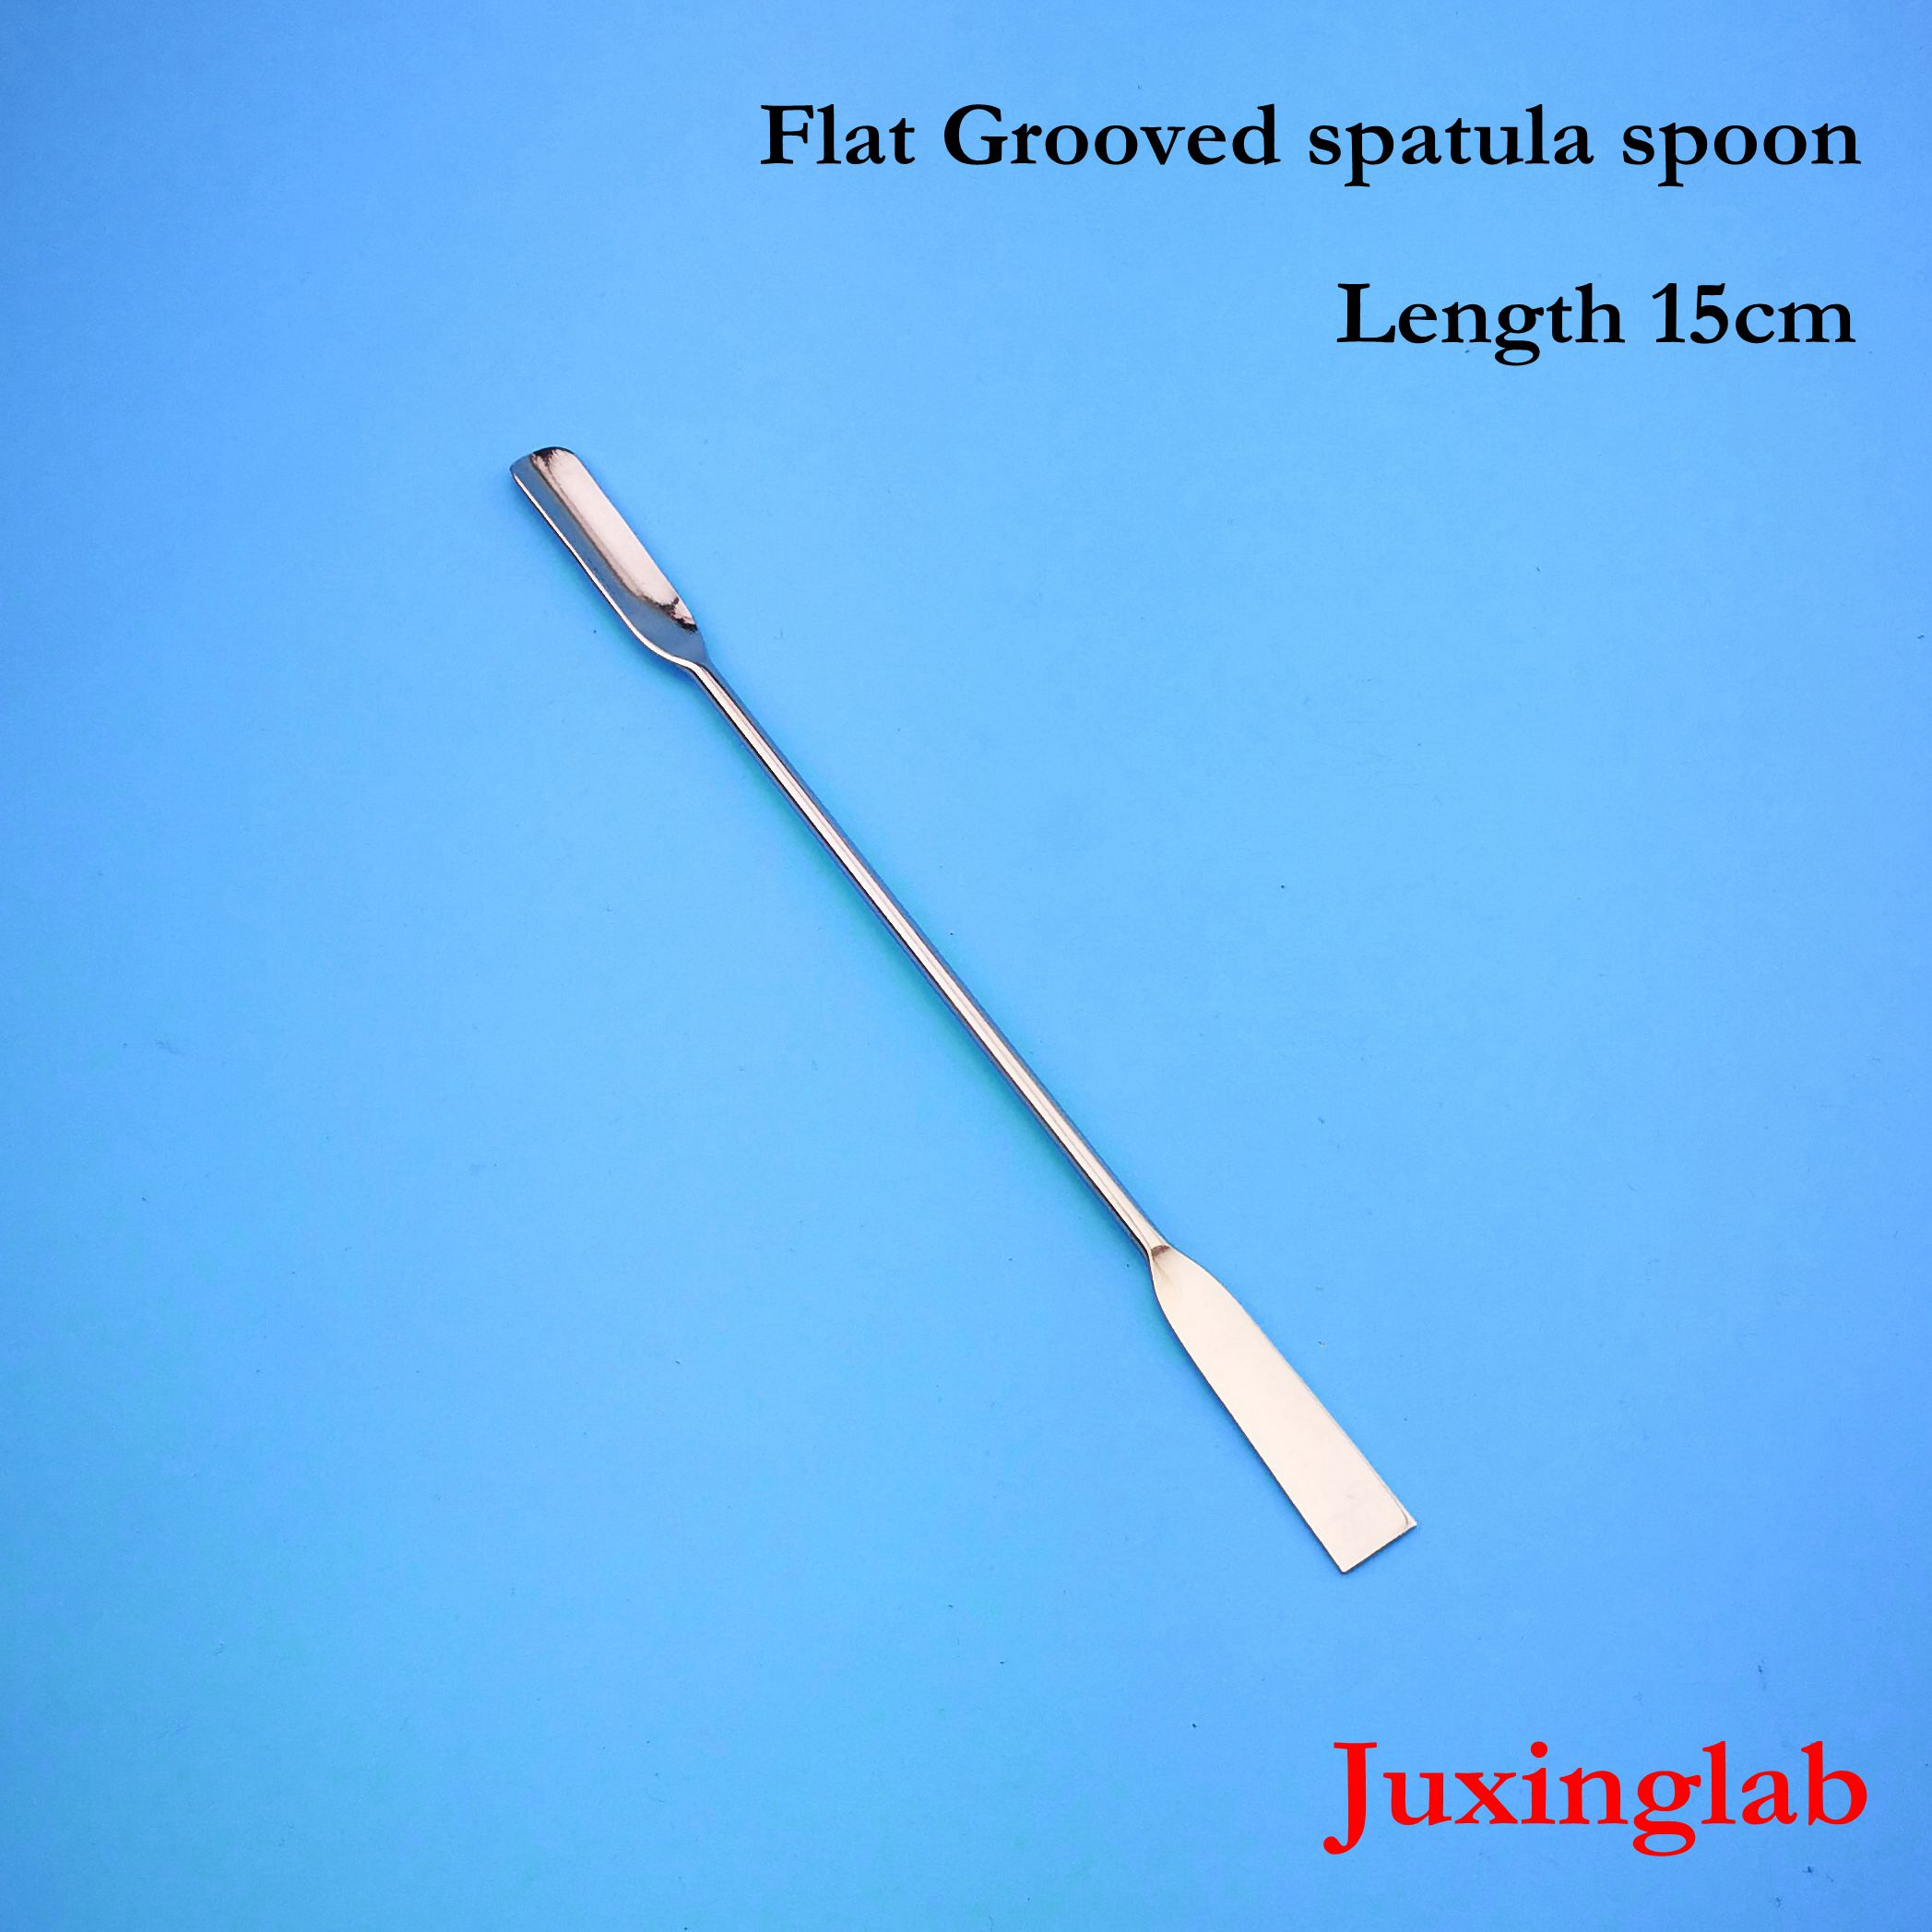 Laboratory  Flat Grooved Spatula Length 150mm Made Of Stainless Steel Spatula Spoon 15cm